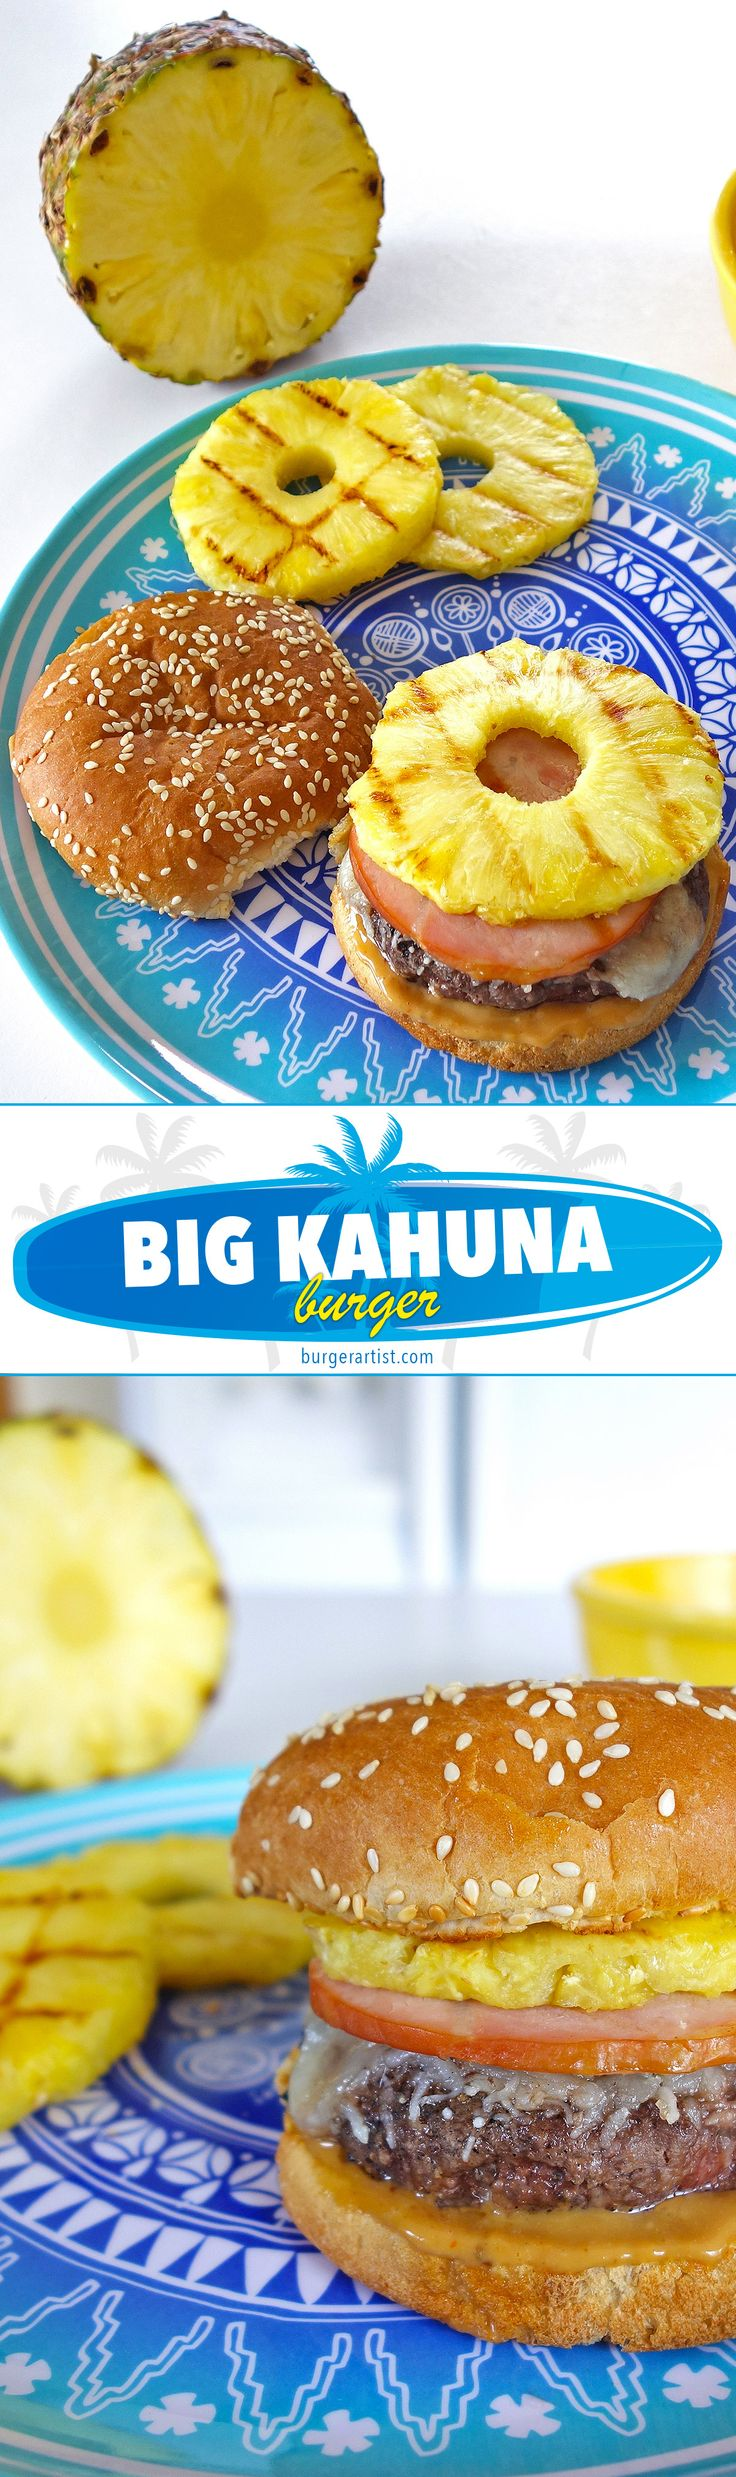 The Big Kahuna Hawaiian Burger - topped with pineapple, canadian bacon, and mozzarella cheese. - Gourmet Burgers from BurgerArtist.com